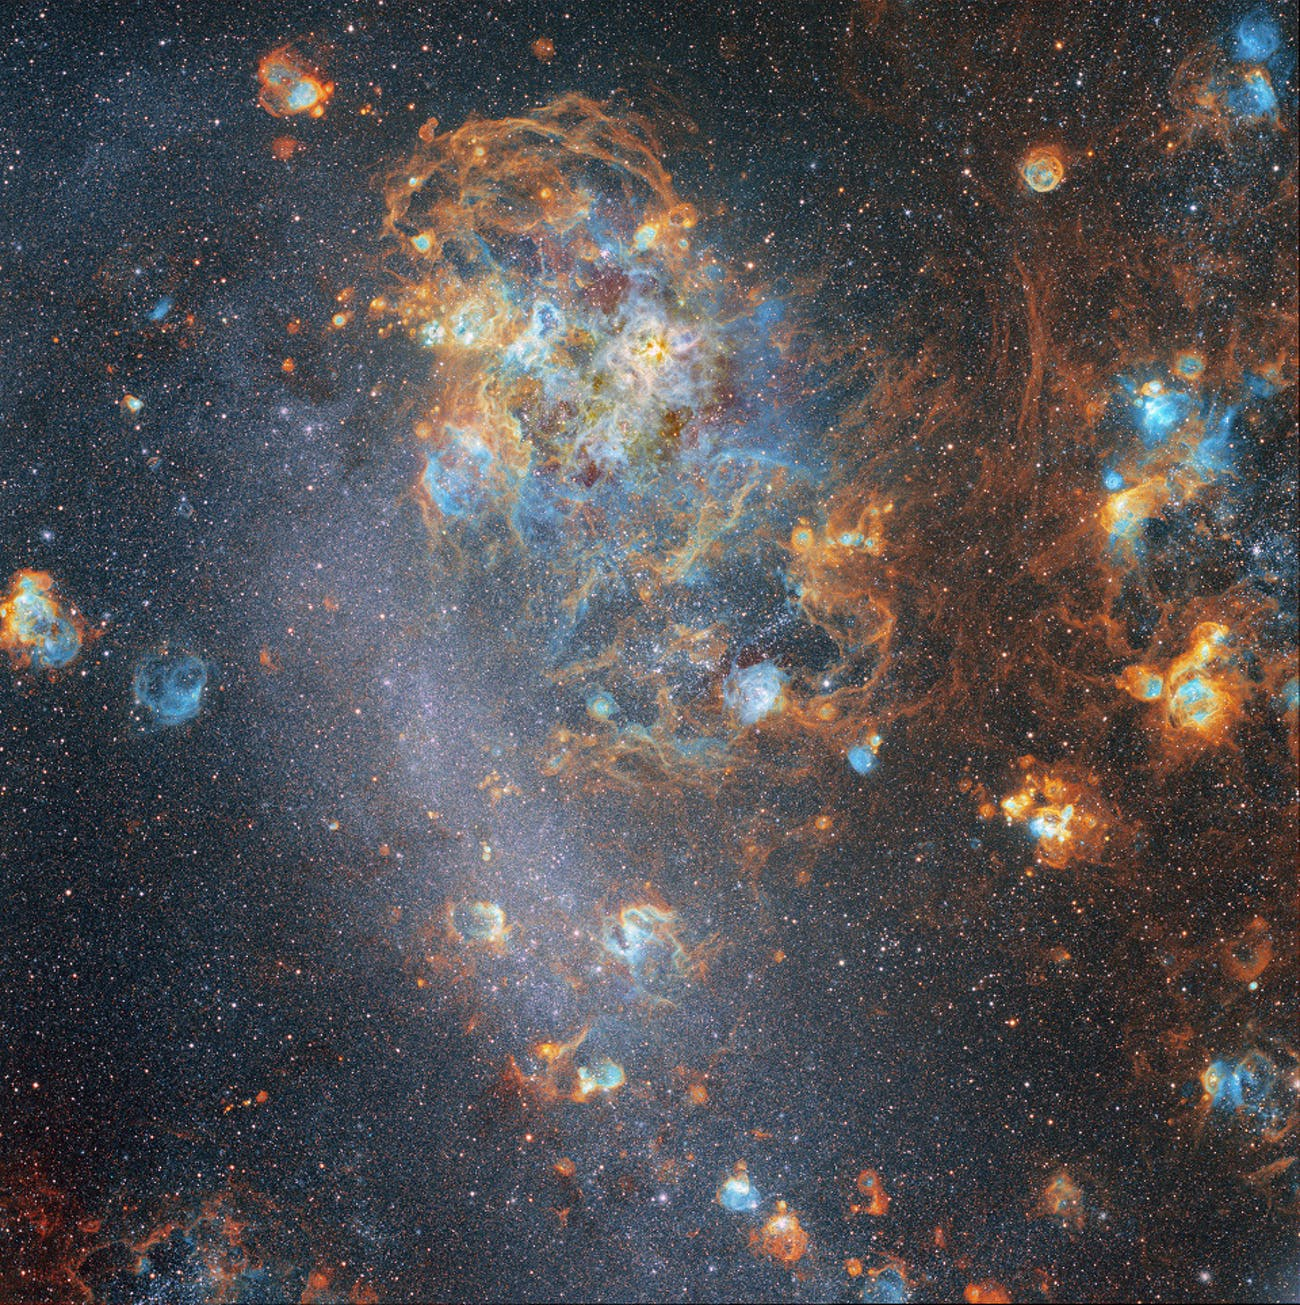 A view of the Large Magellanic Cloud